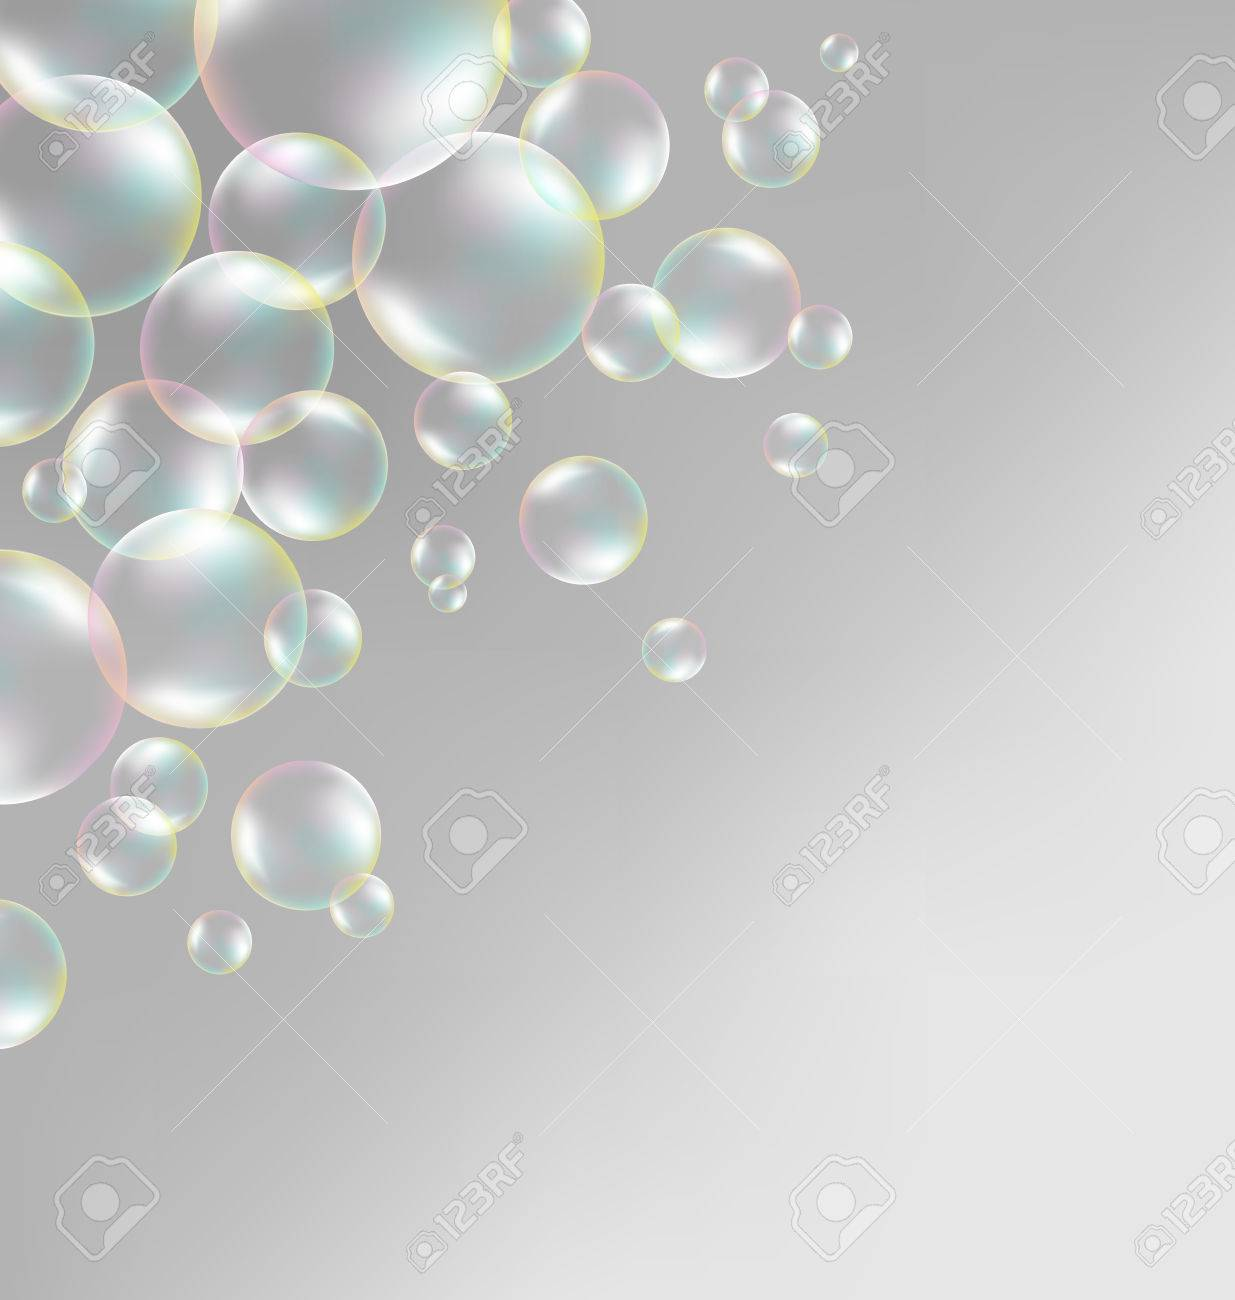 Background image grayscale - Transparent Iridescent Soap Bubbles On Grayscale Background Stock Photo 34247082